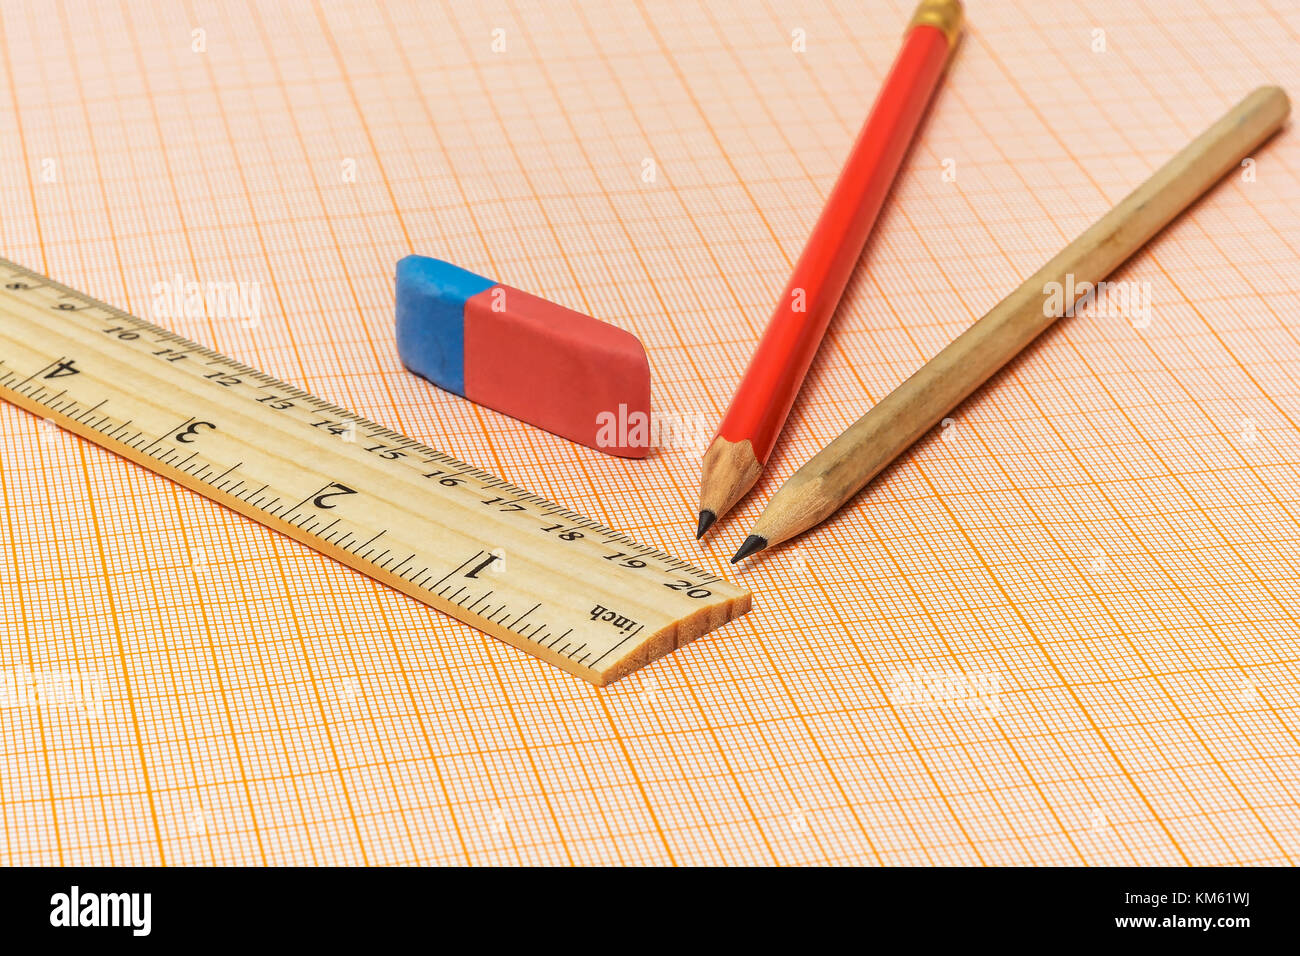 On a millimeter paper there is a wooden ruler, an eraser and two simple pencils - Stock Image